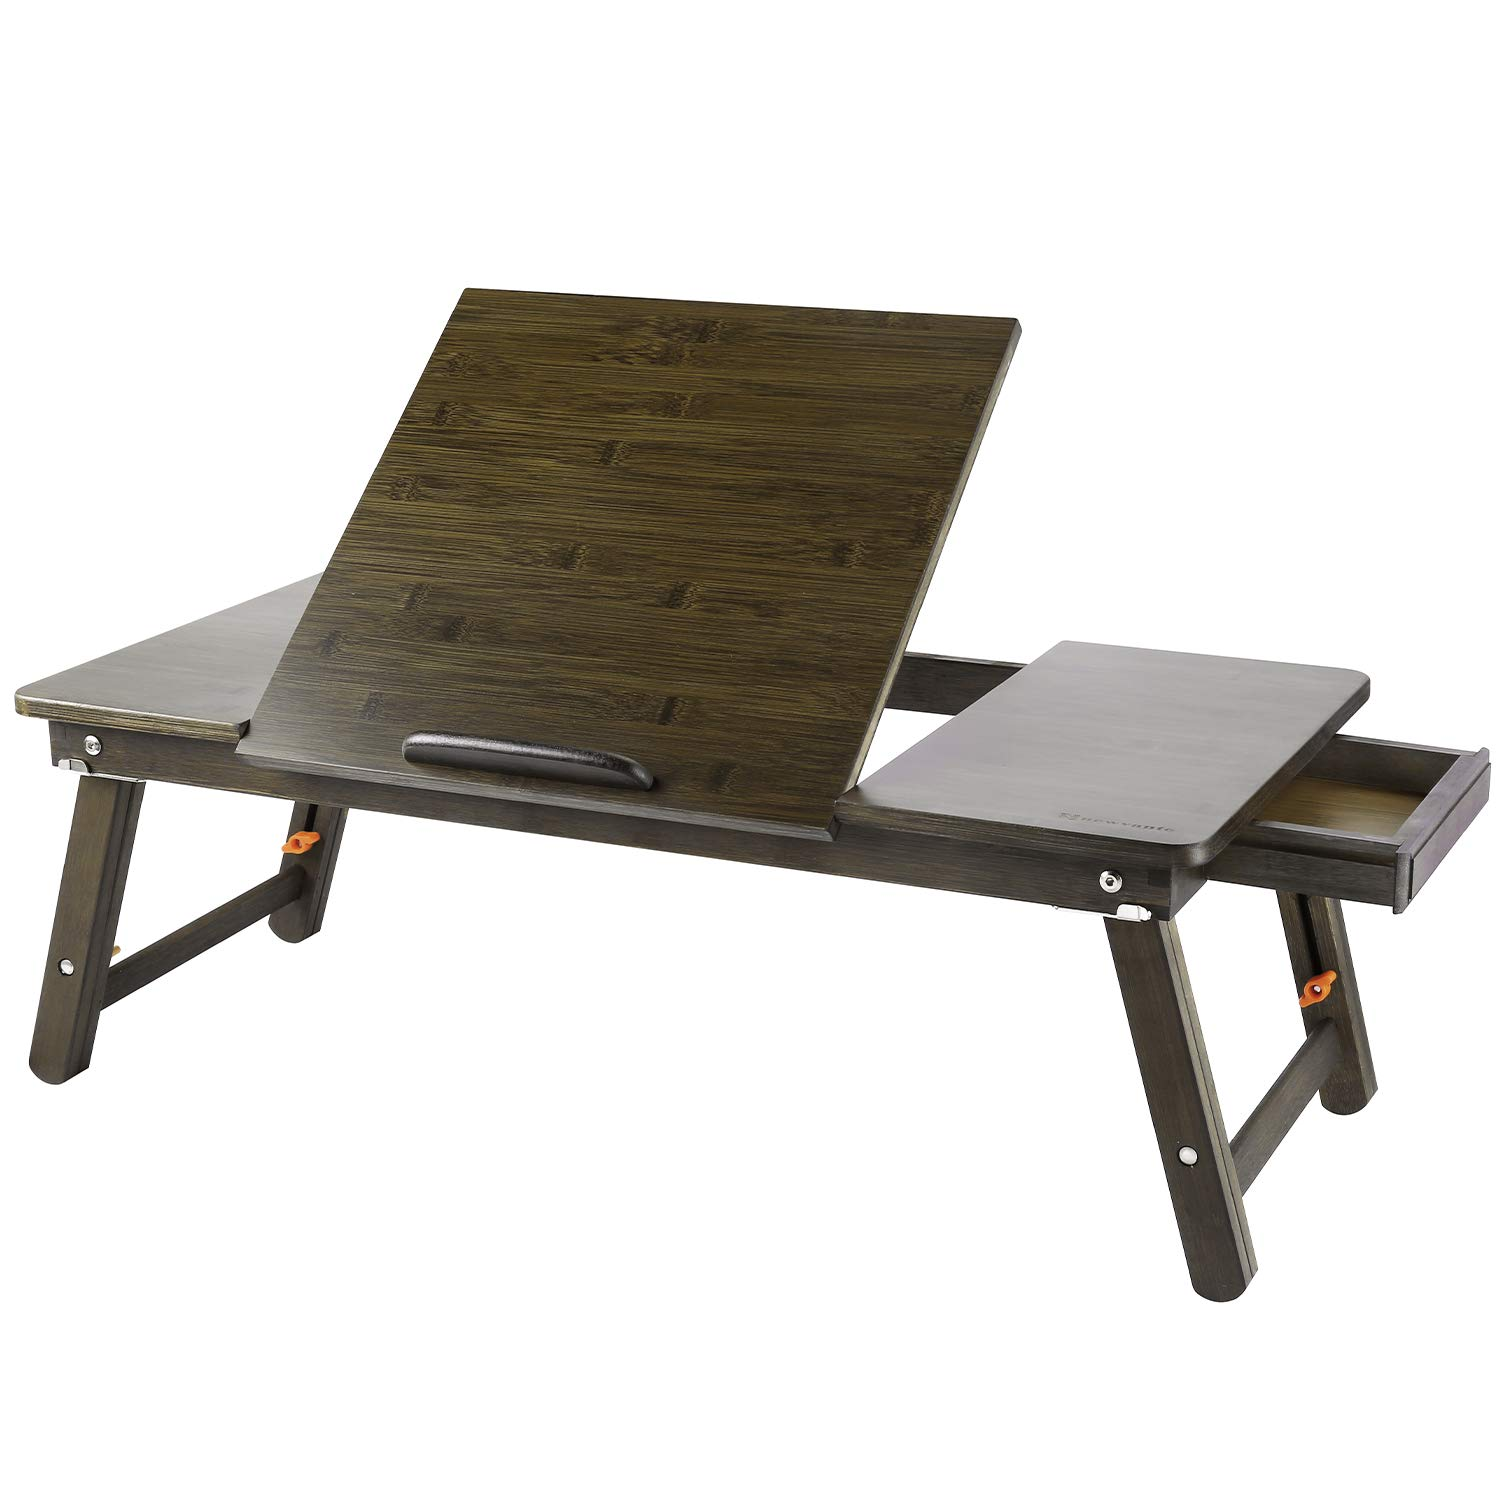 Laptop Desk Nnewvante Bamboo Laptop Table Adjustable Lap Tray Bed Serving Tray Breakfast Table Foldable Coffee Tea Table 5 Tilting Top Angles 2 Latches Prevent Leg Wobbling Large 27.95'' x 13.8'' Retro